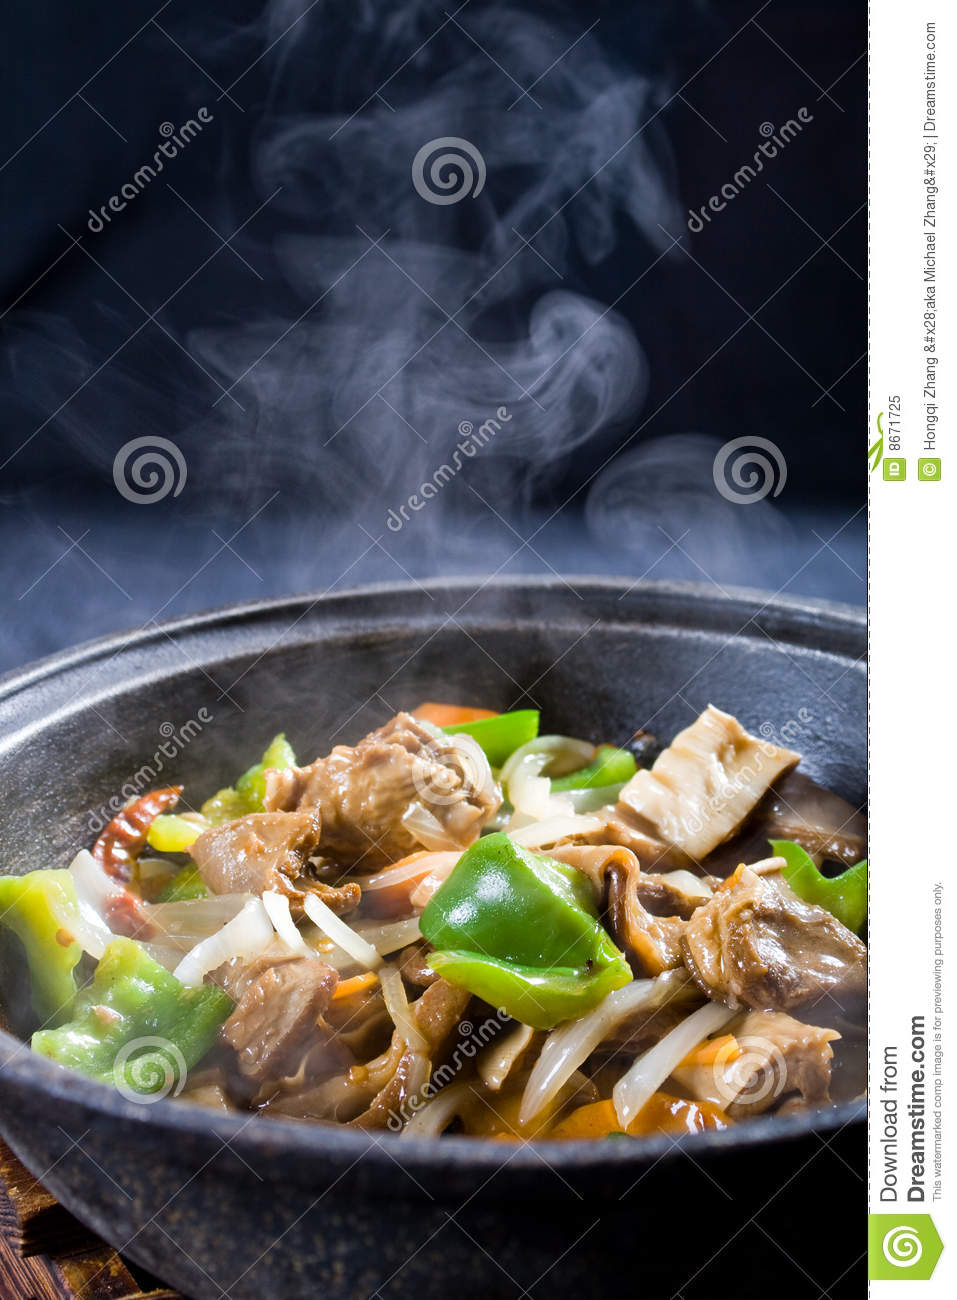 Steaming stew